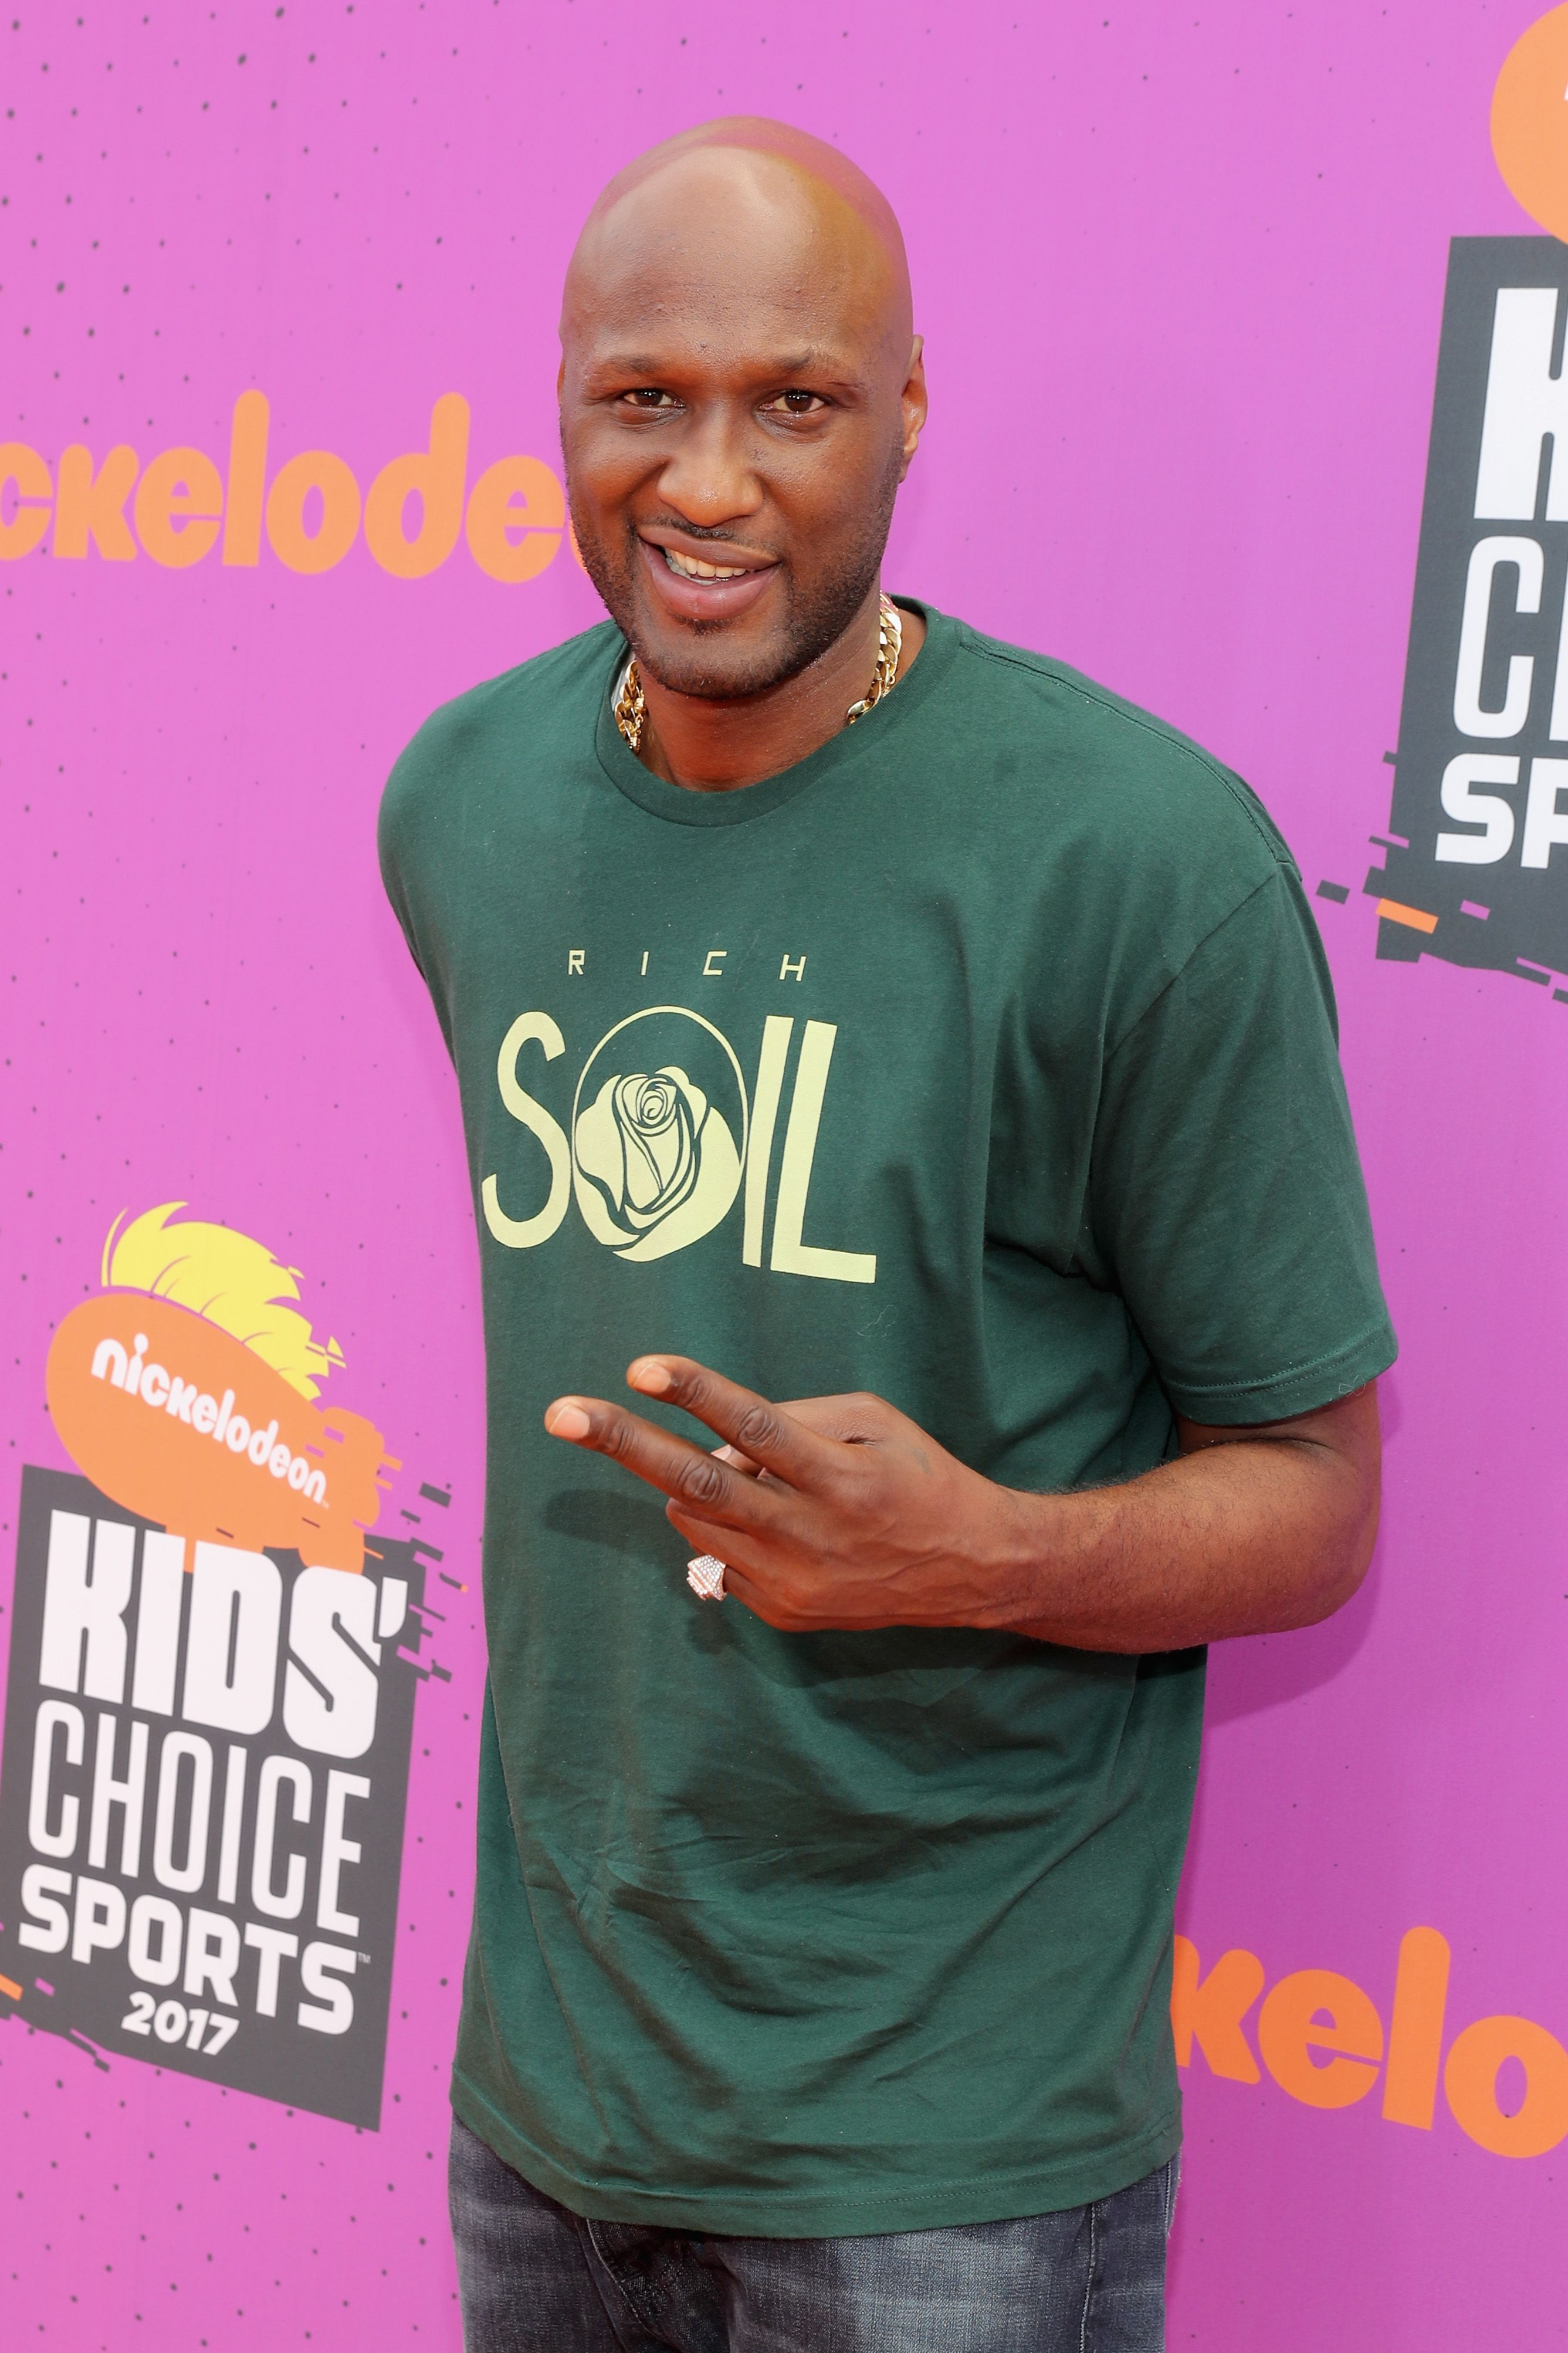 Lamar Odom during the Nickelodeon Kids' Choice Sports Awards 2017 at Pauley Pavilion on July 13, 2017 in Los Angeles, California. | Source: Getty Images